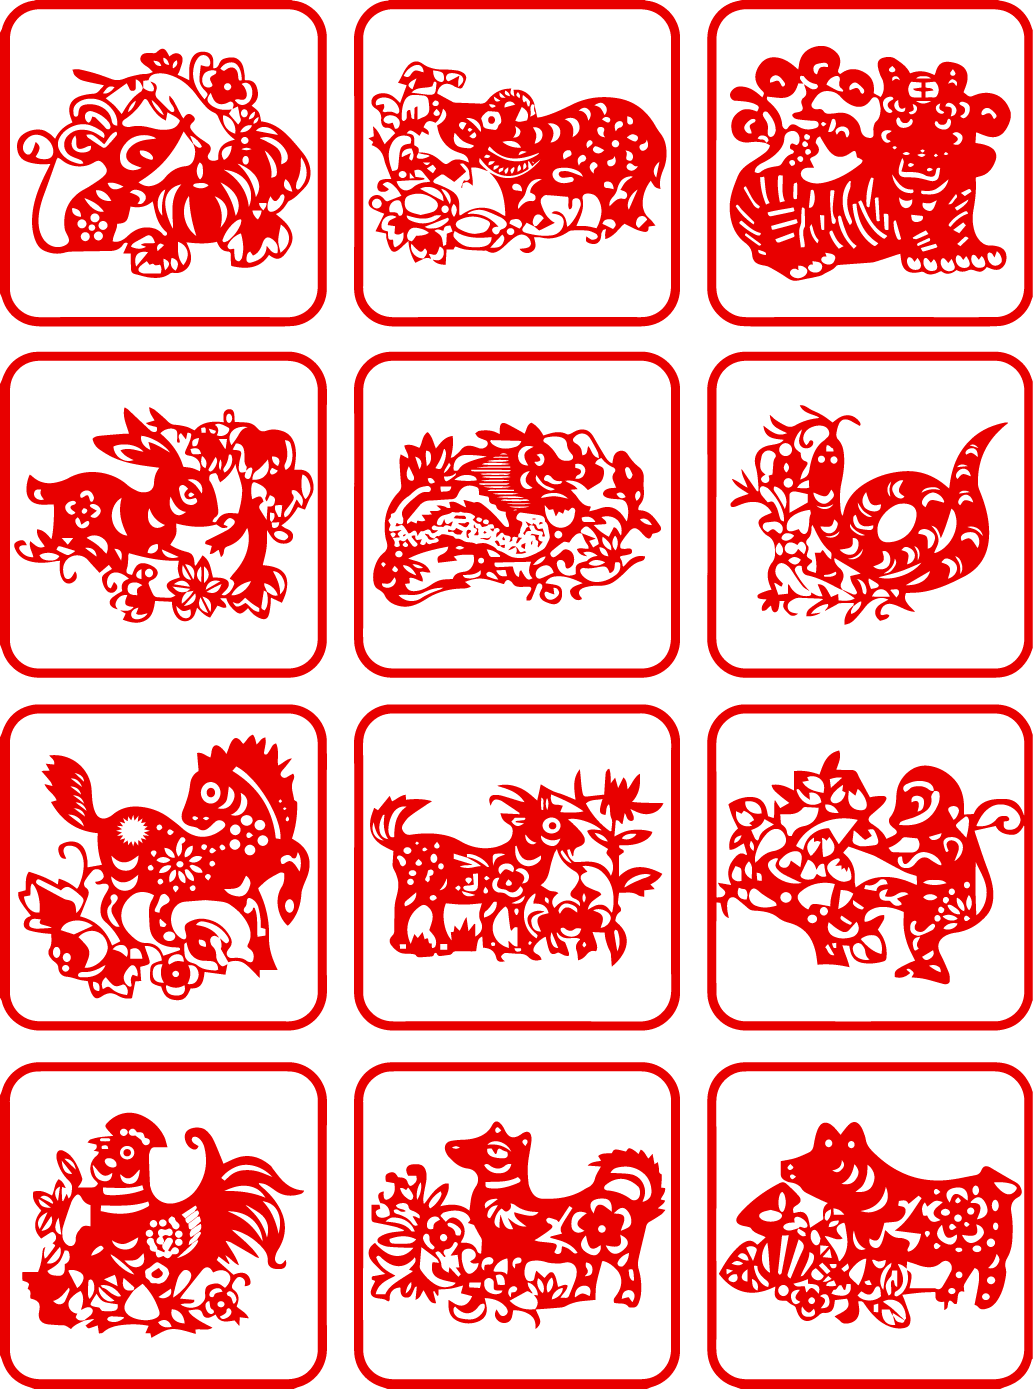 Chinese zodiac design clipart modelling Illustrations Vectors AI Free Download